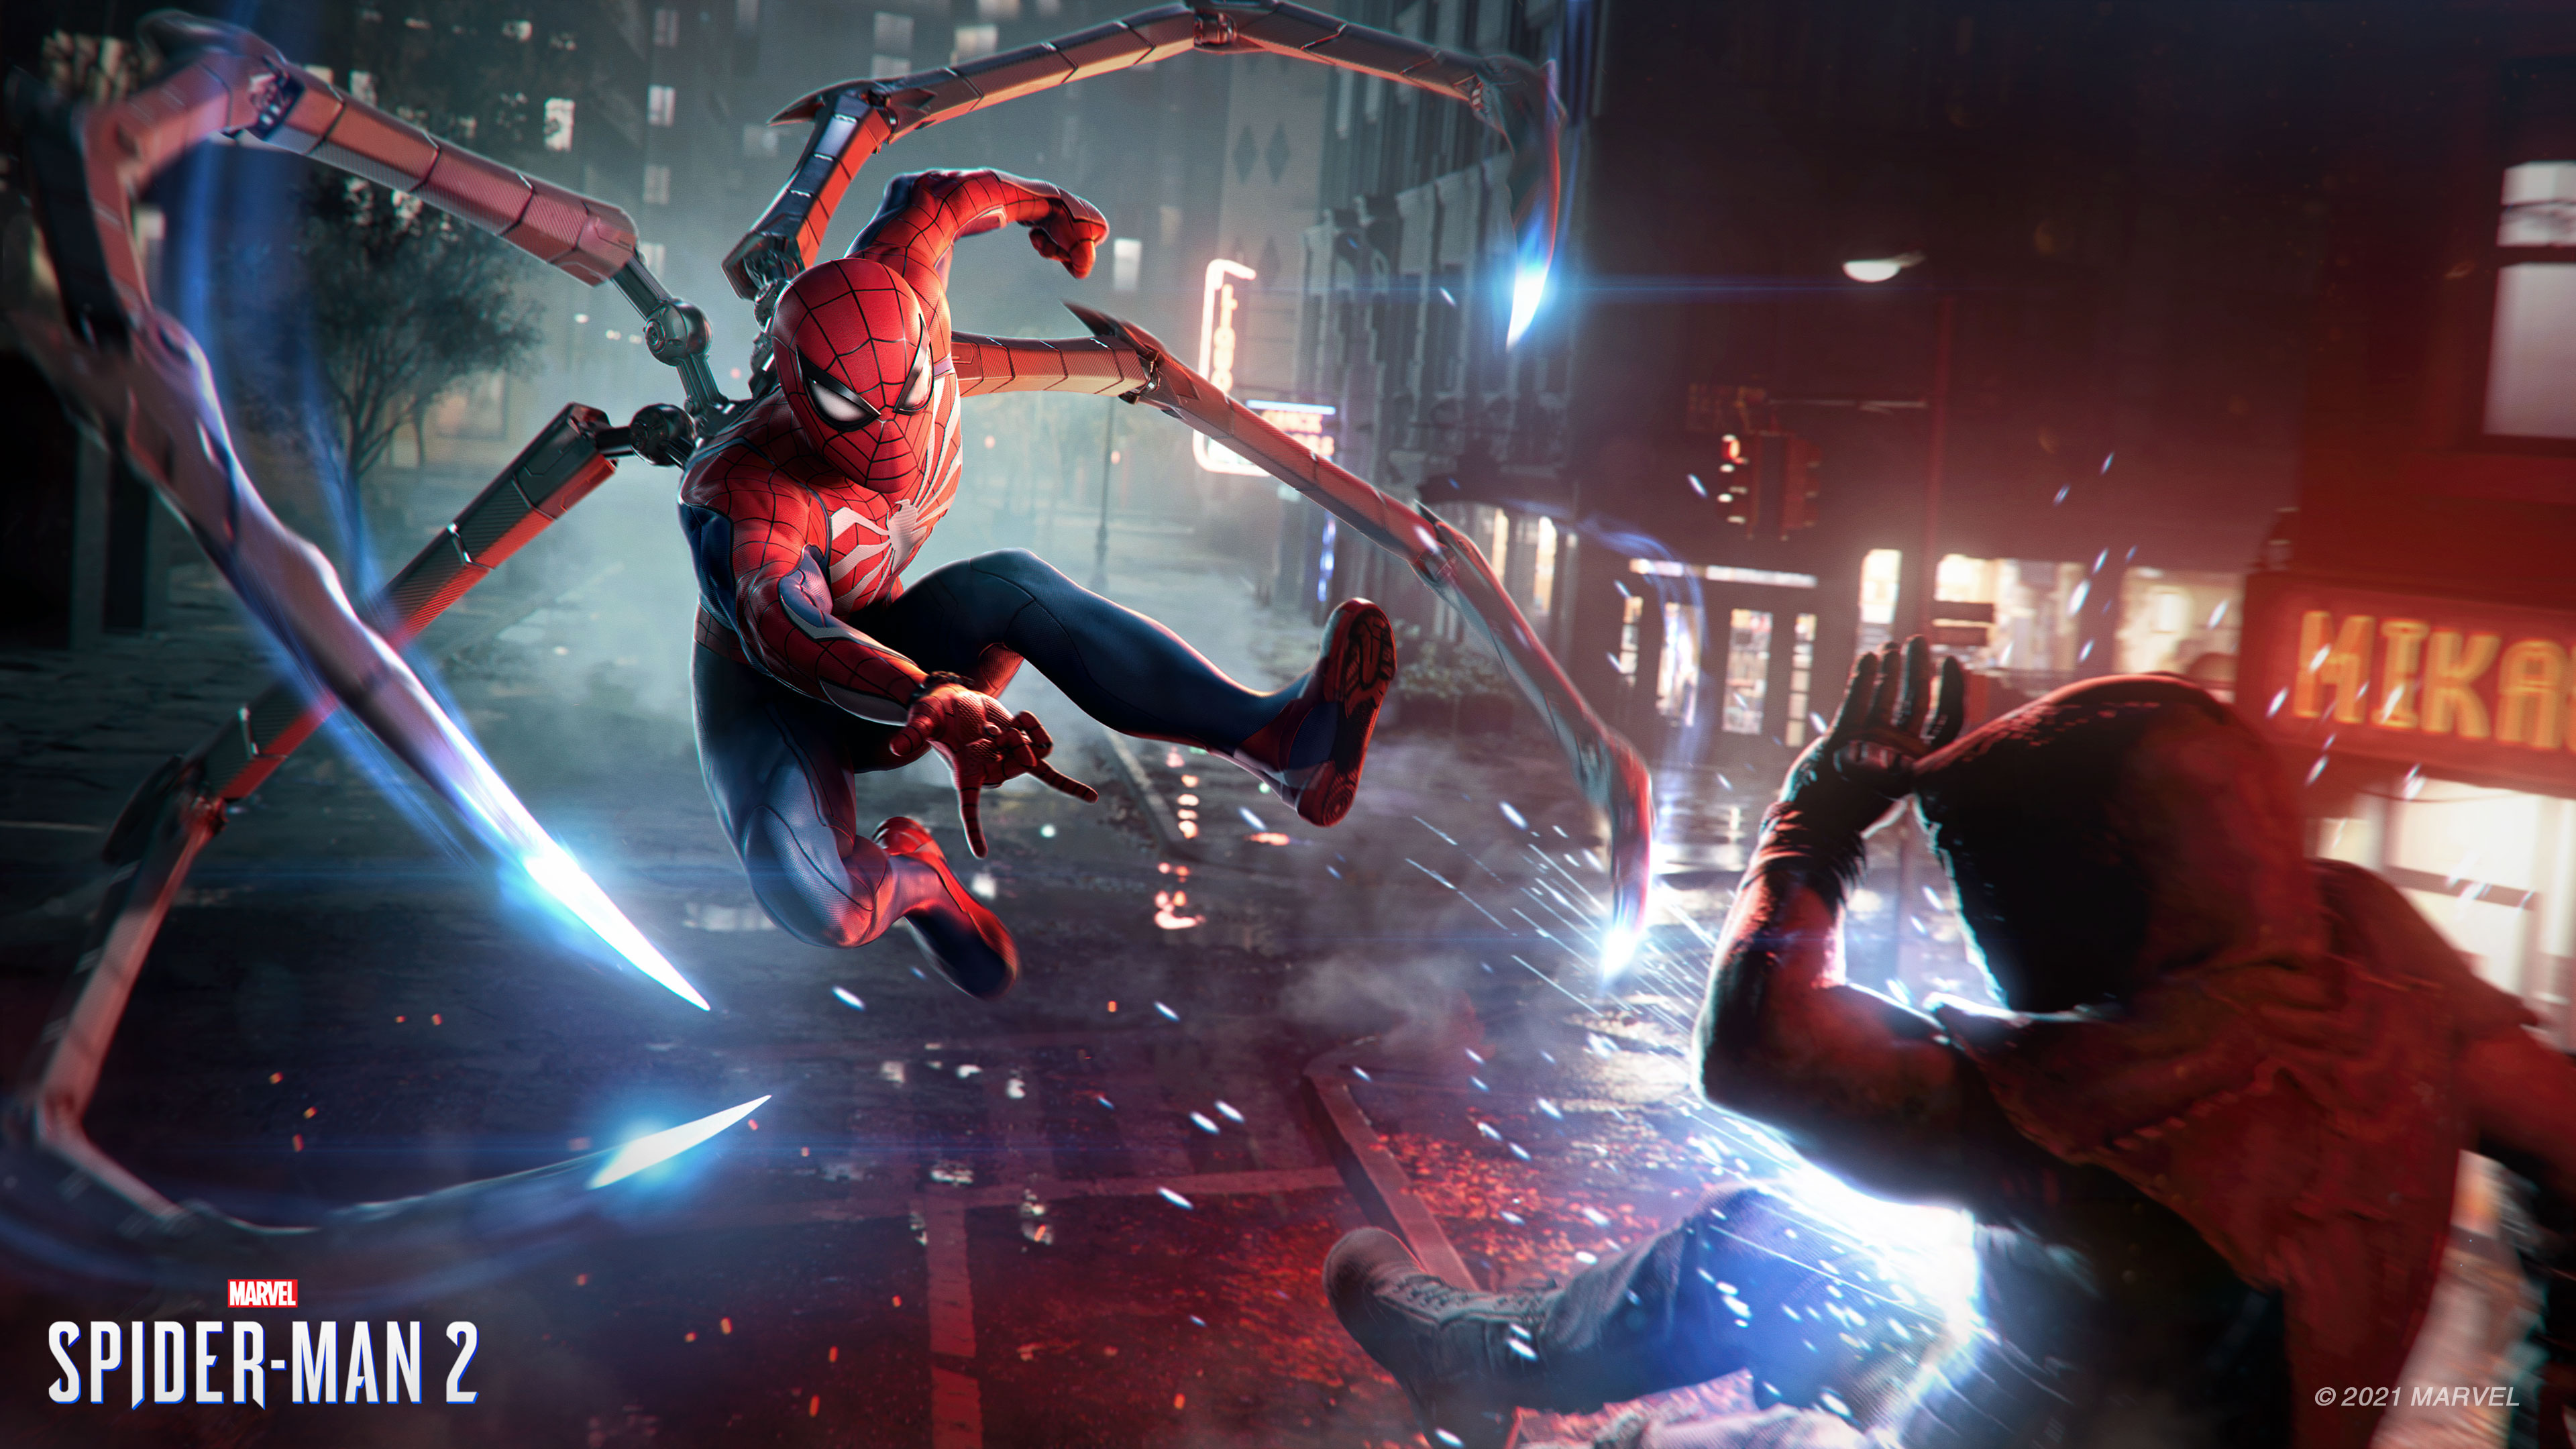 Spider-Man shoots a web in a screenshot from Marvel's Spider-Man 2